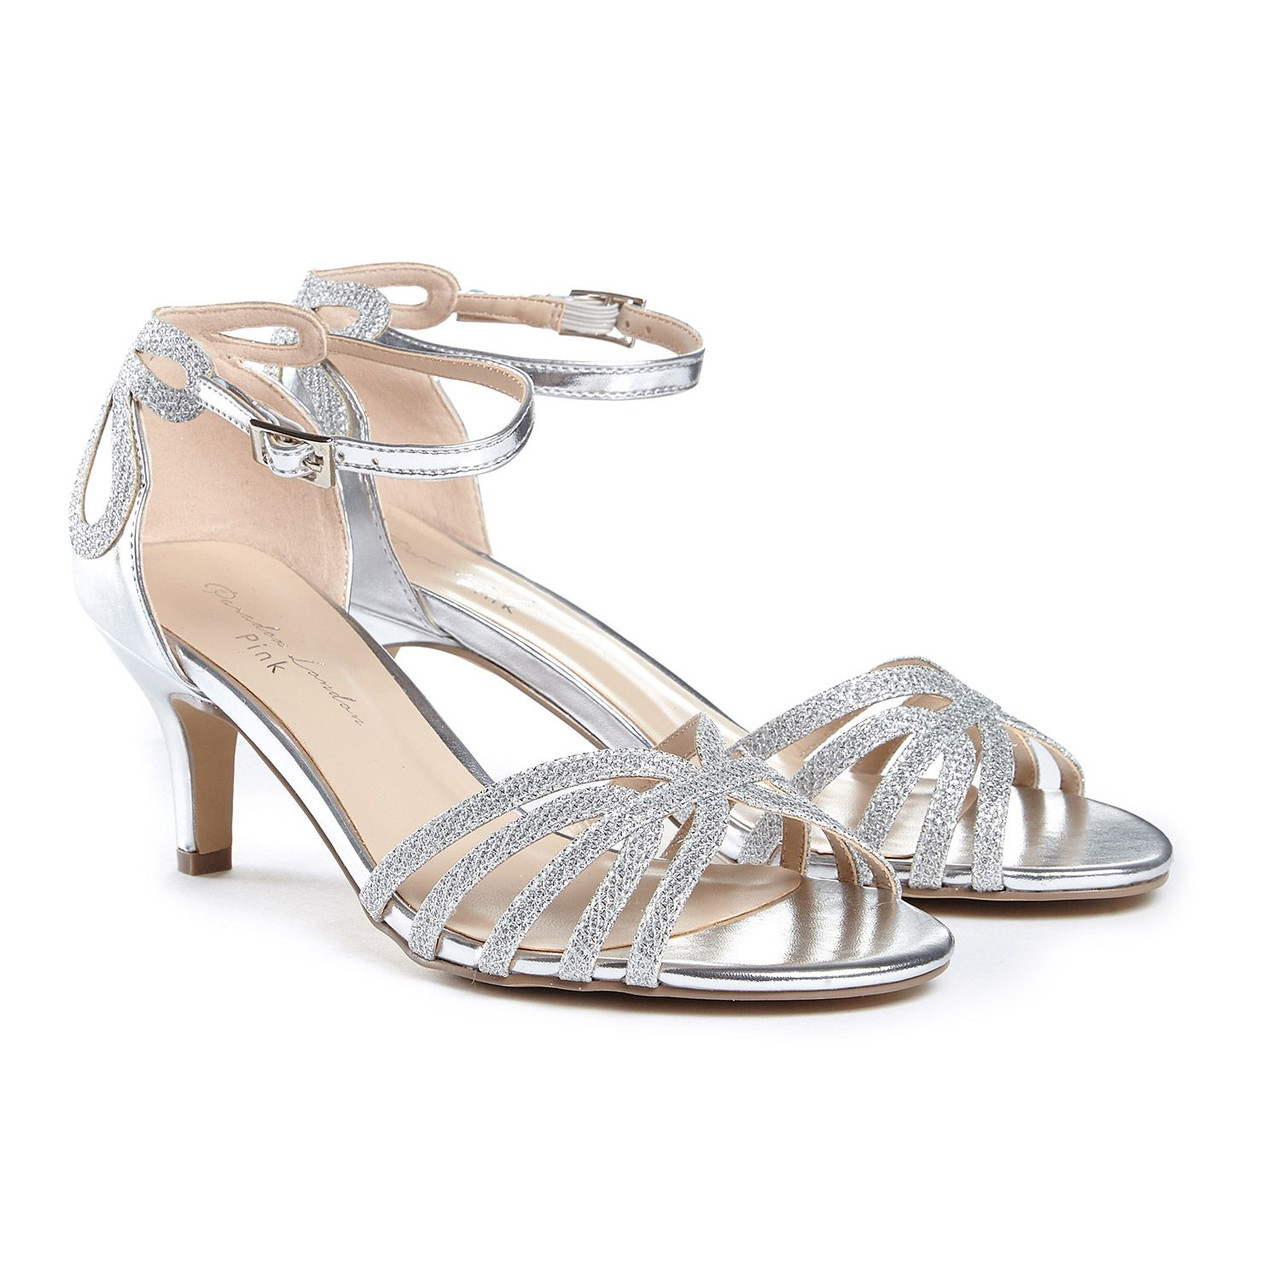 Paradox London Melby Silver - Pink Collection - Standard Medium Size